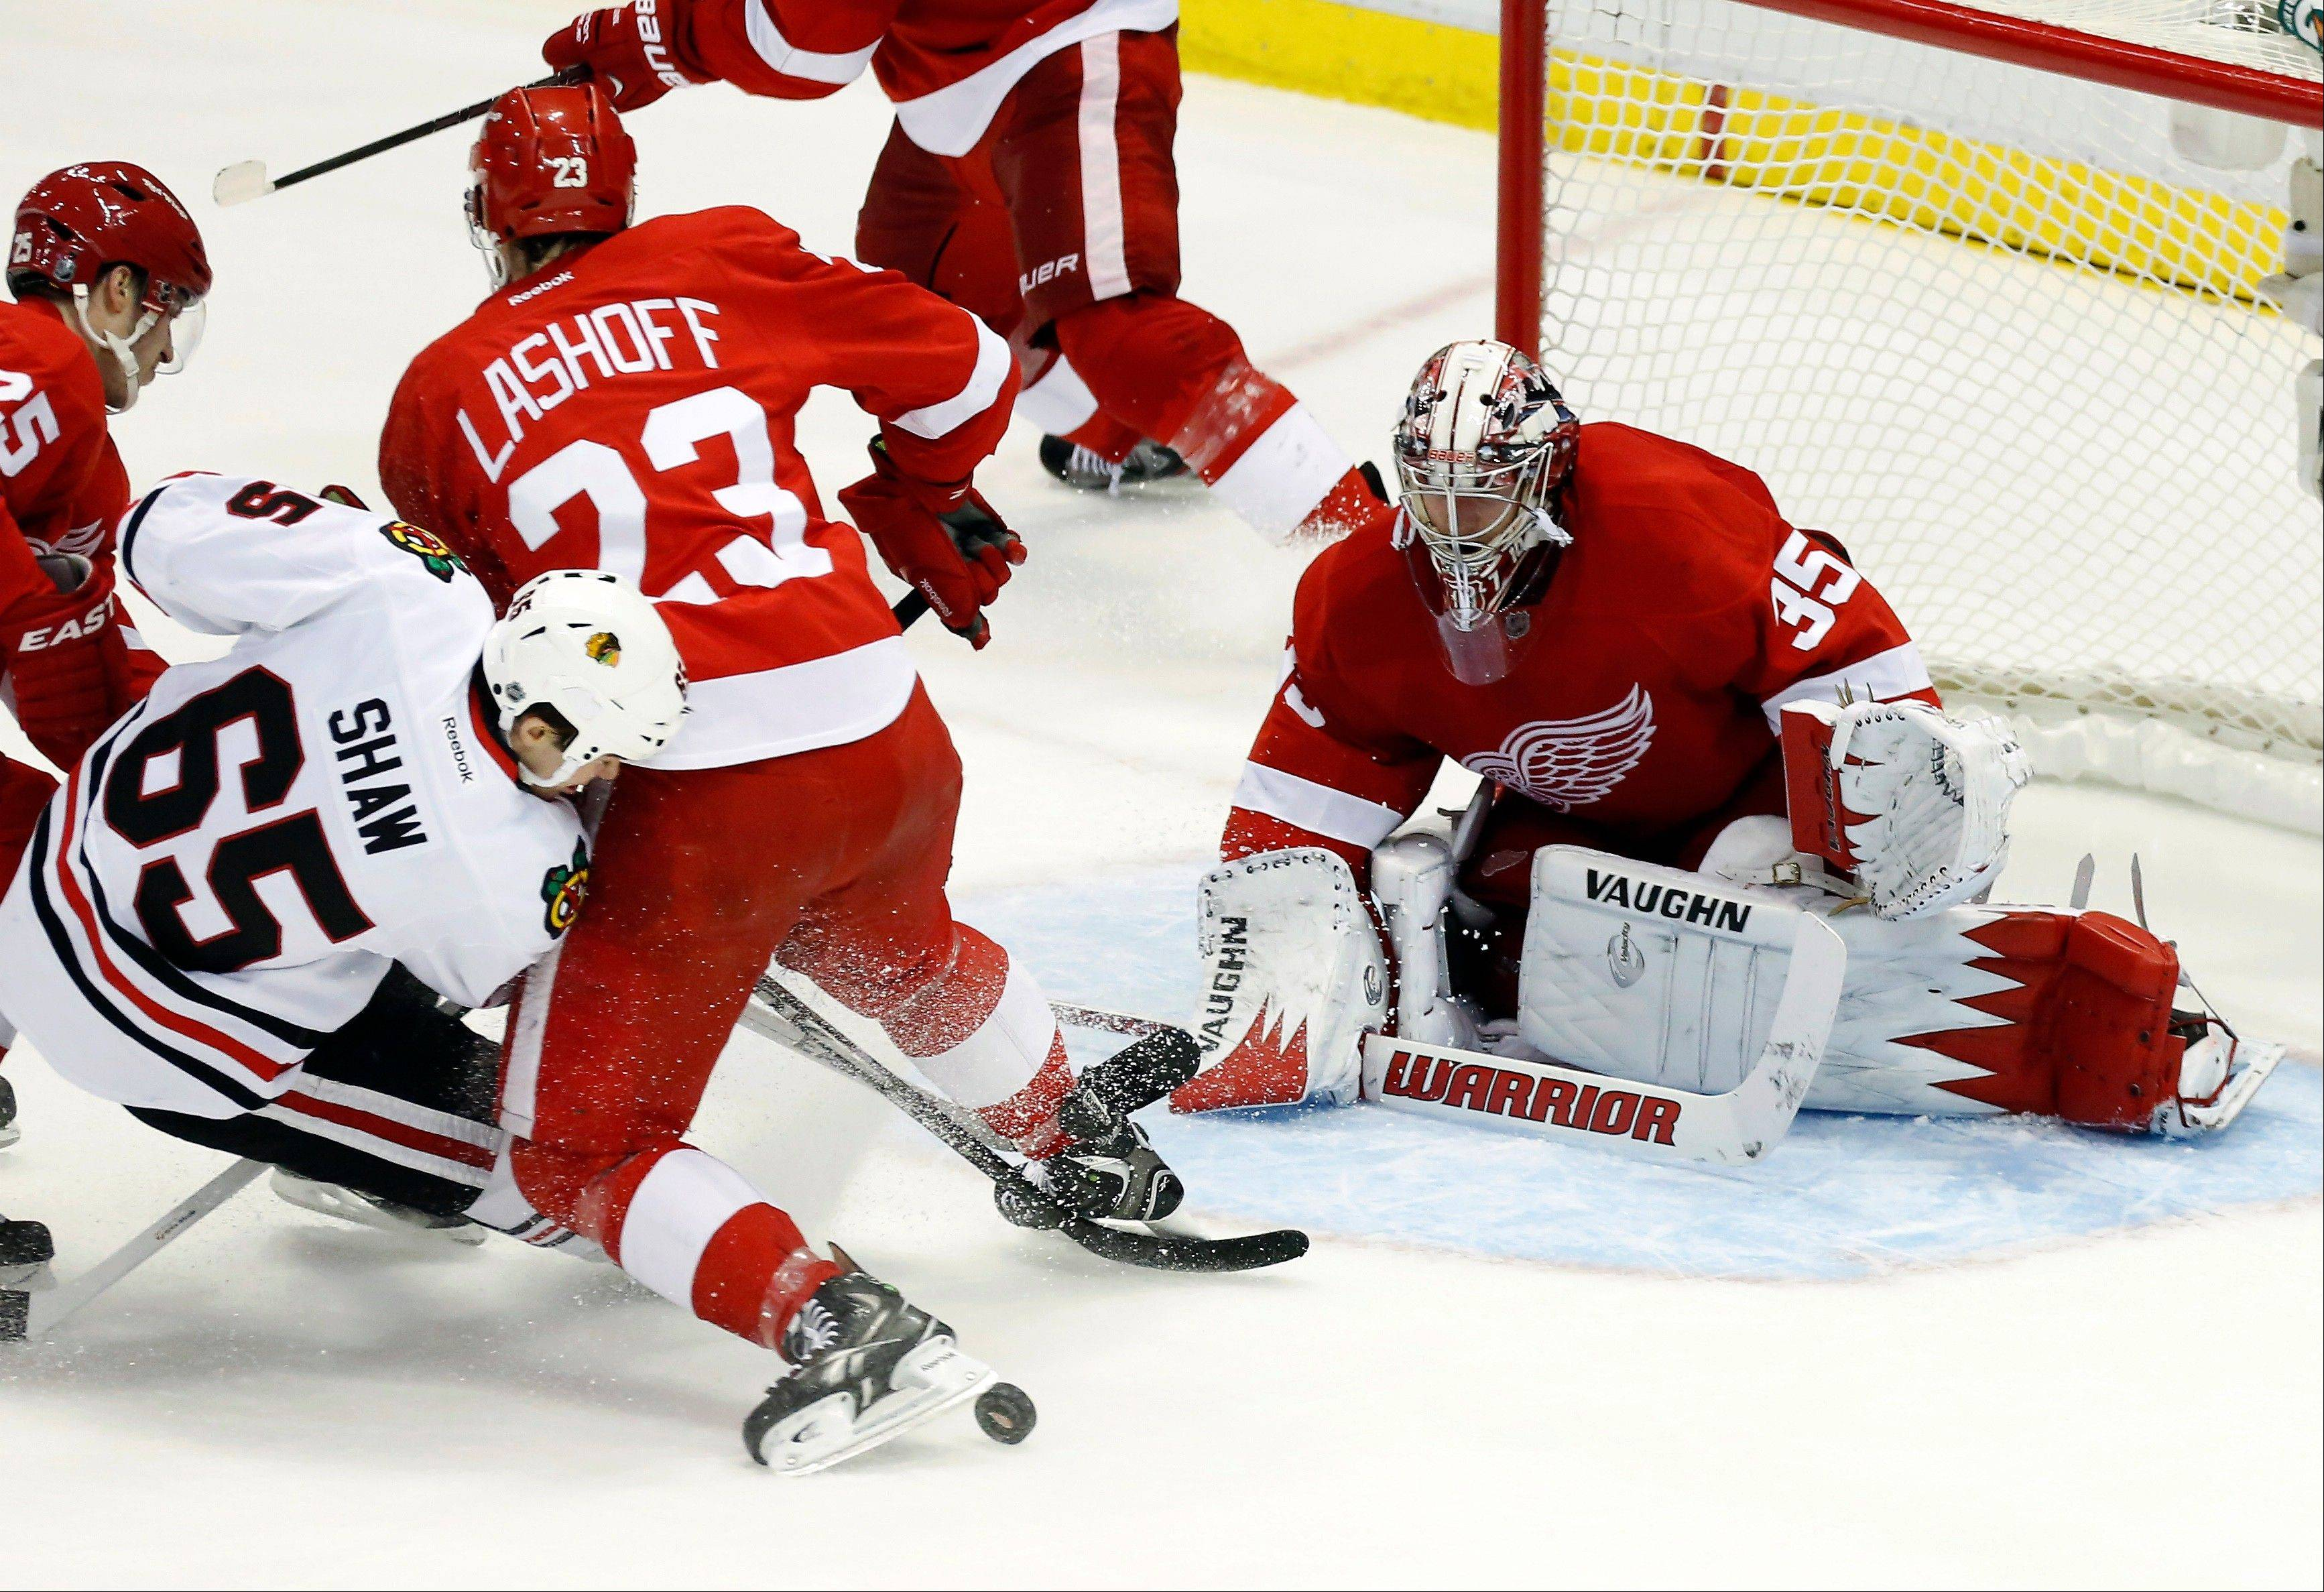 Detroit Red Wings defenseman Brian Lashoff (23) blocks a shot attempt by Blackhawks right wing Andrew Shaw (65) in front of Red Wings goalie Jimmy Howard (35) in the third period Sunday in Detroit. If realignment takes place the way it�s being outlined, the Hawks and Red Wings will meet just twice per season.